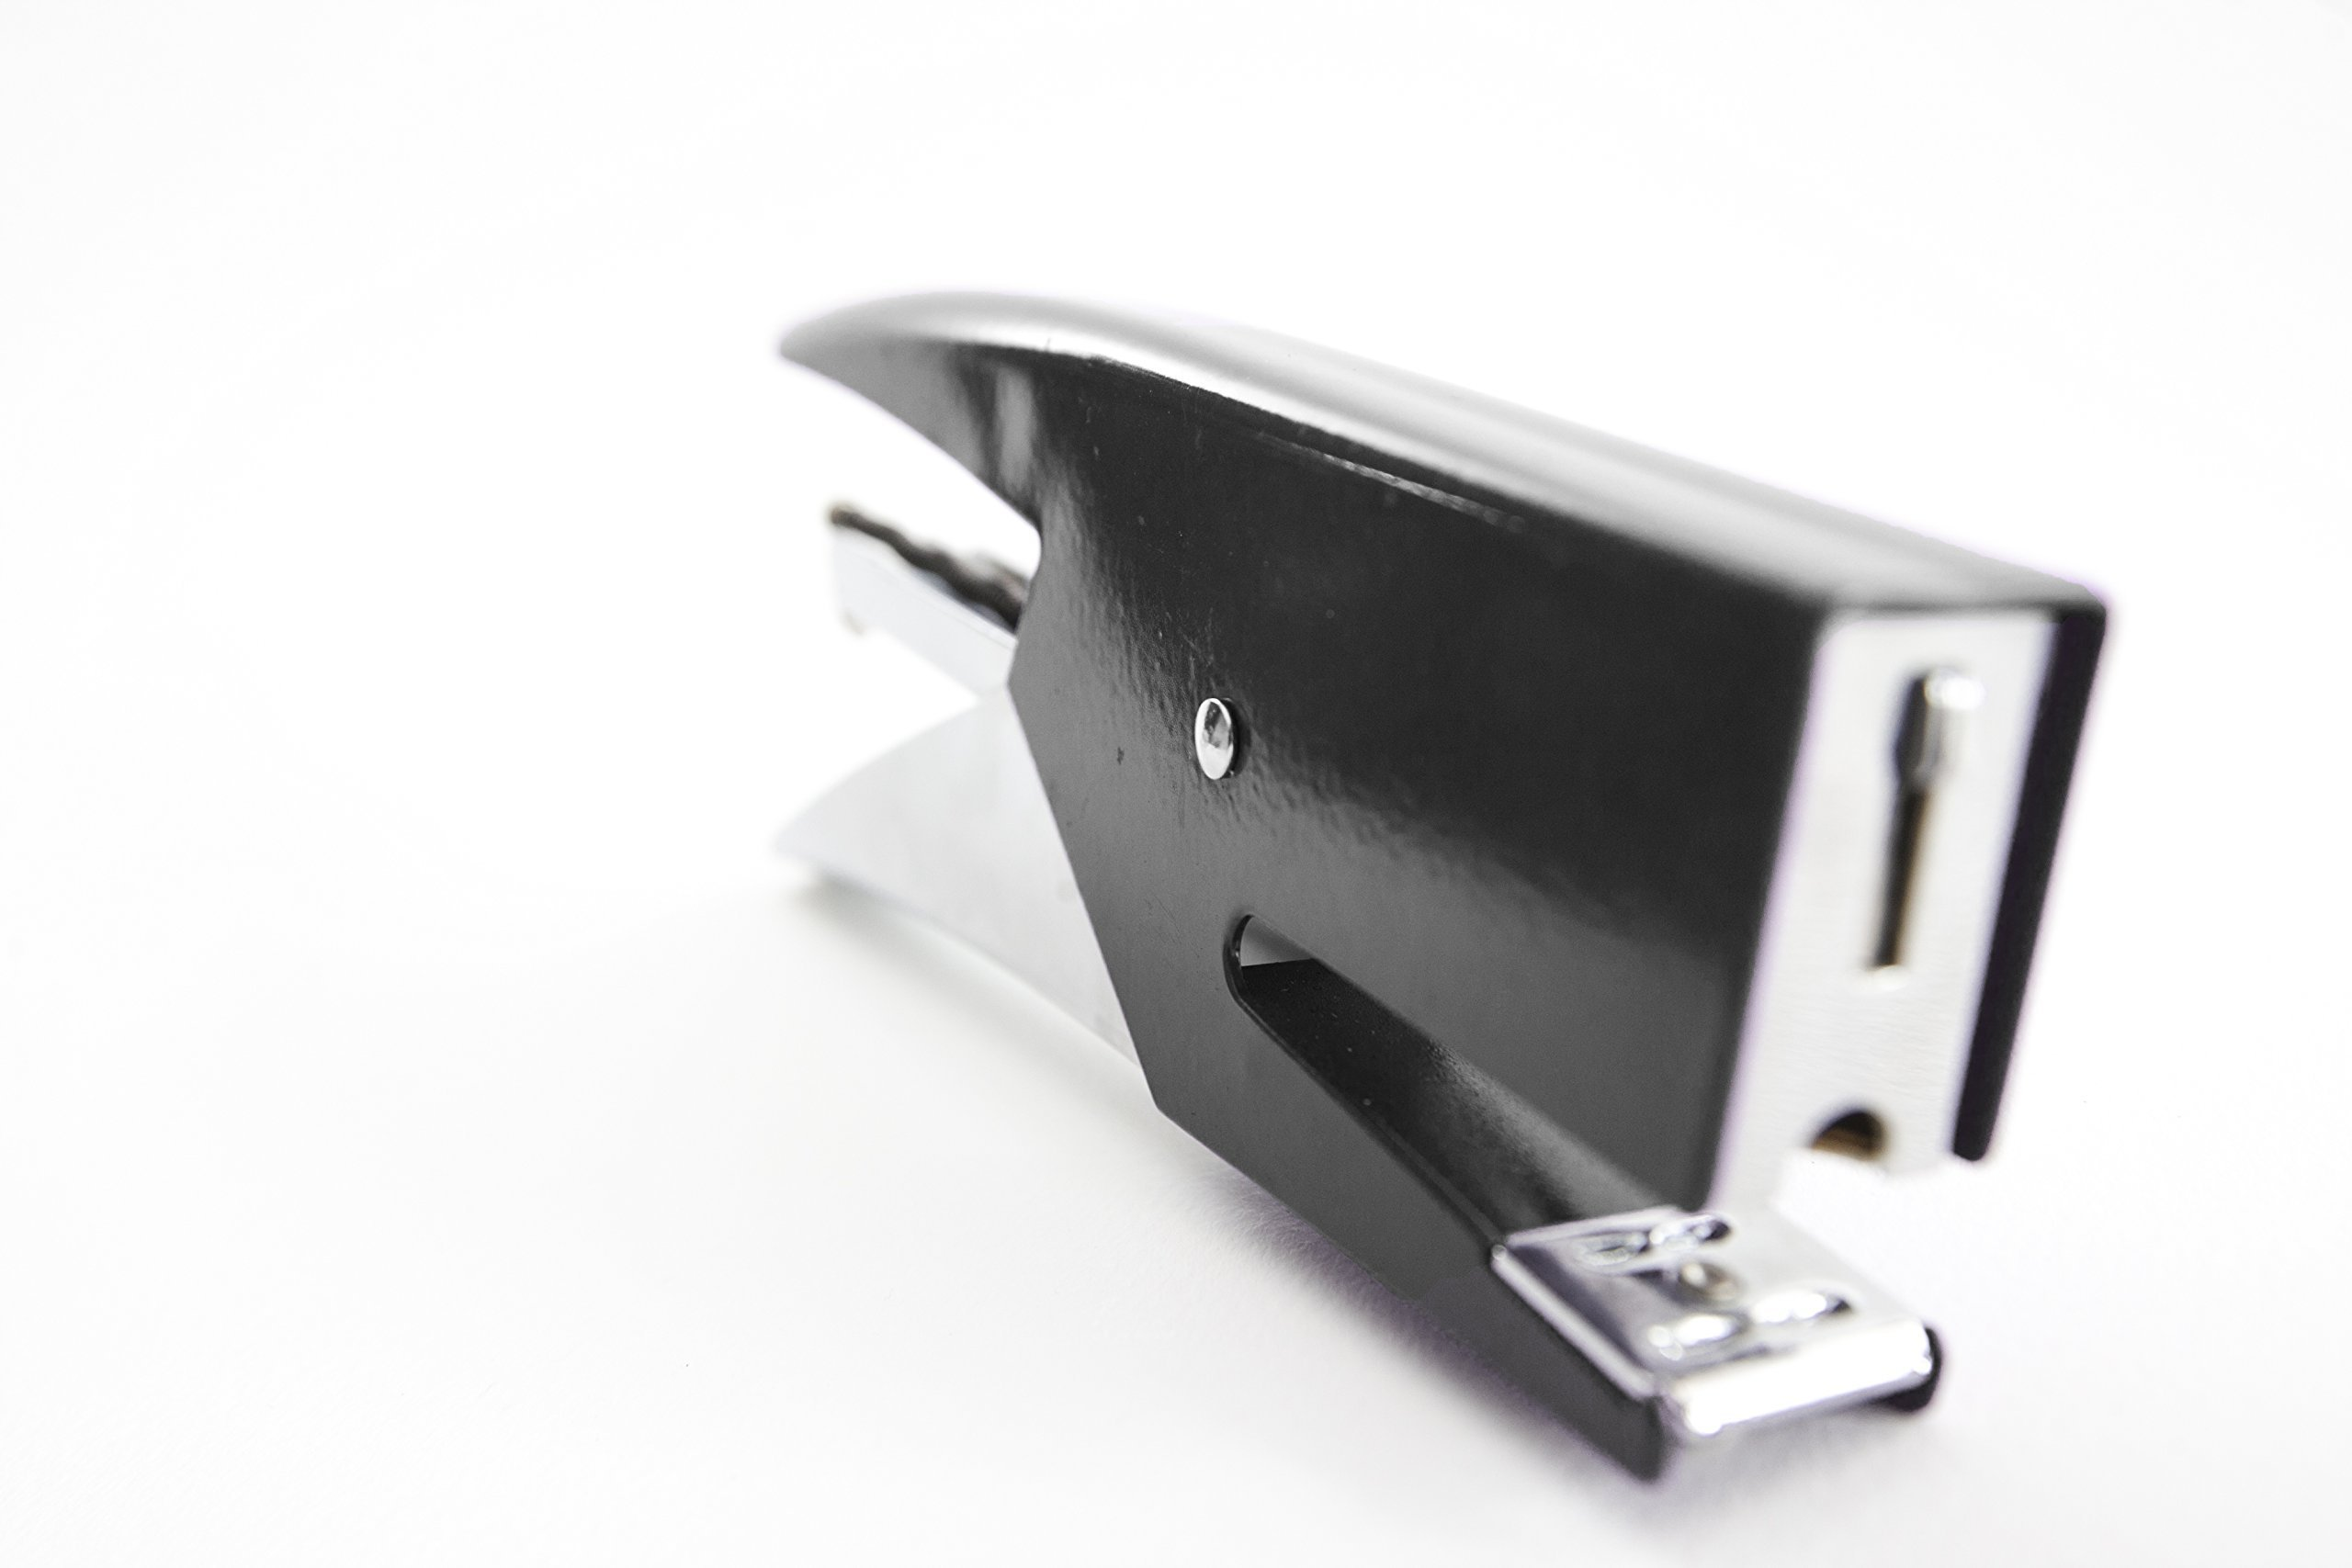 Metal Plier Stapler -all Metal- for Home and Office Uses 26/6 24/6 High Capacity 20 Sheet - by RoTo Imports